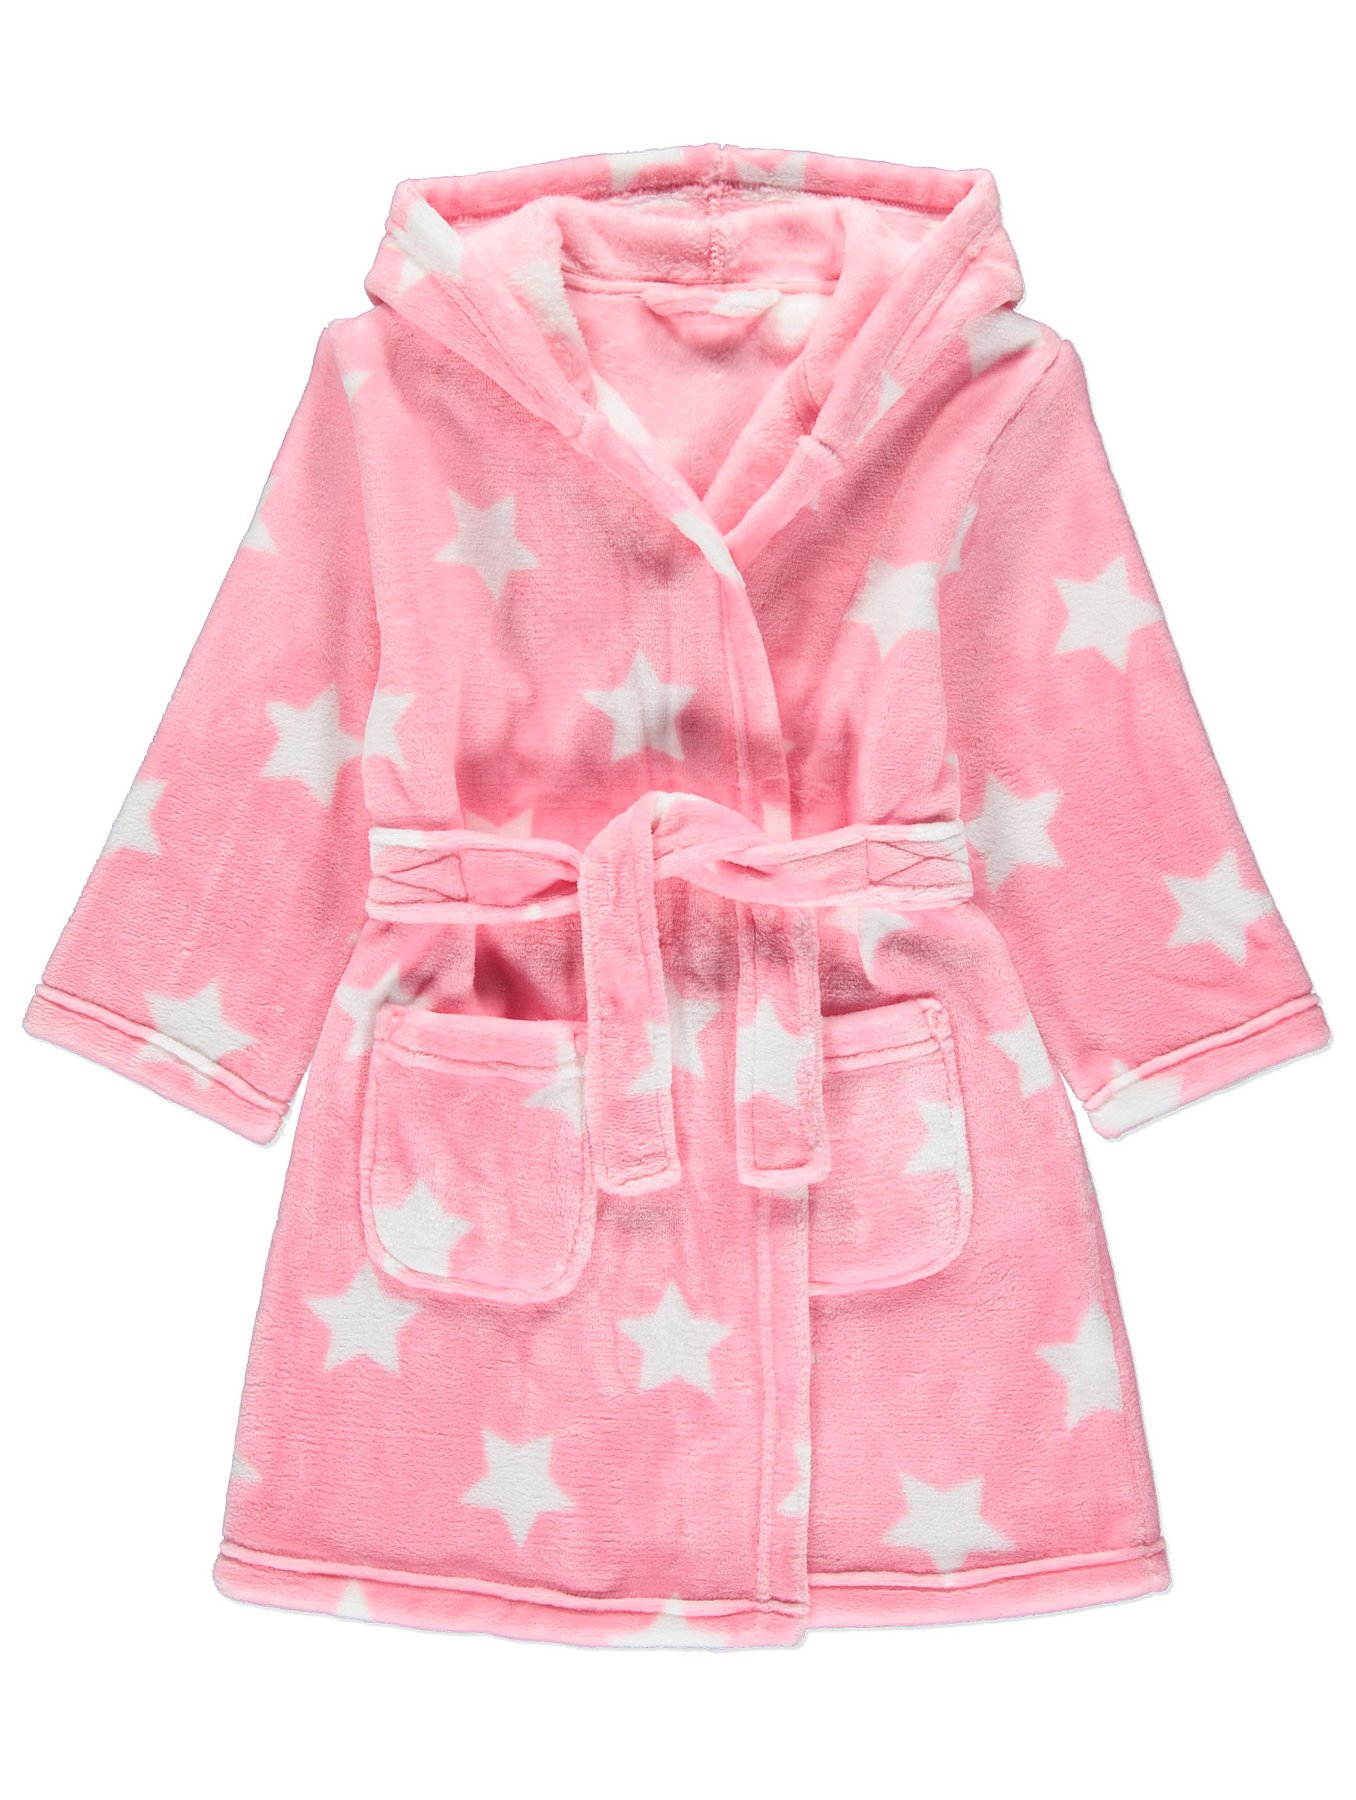 Star Dressing Gown | Kids | George